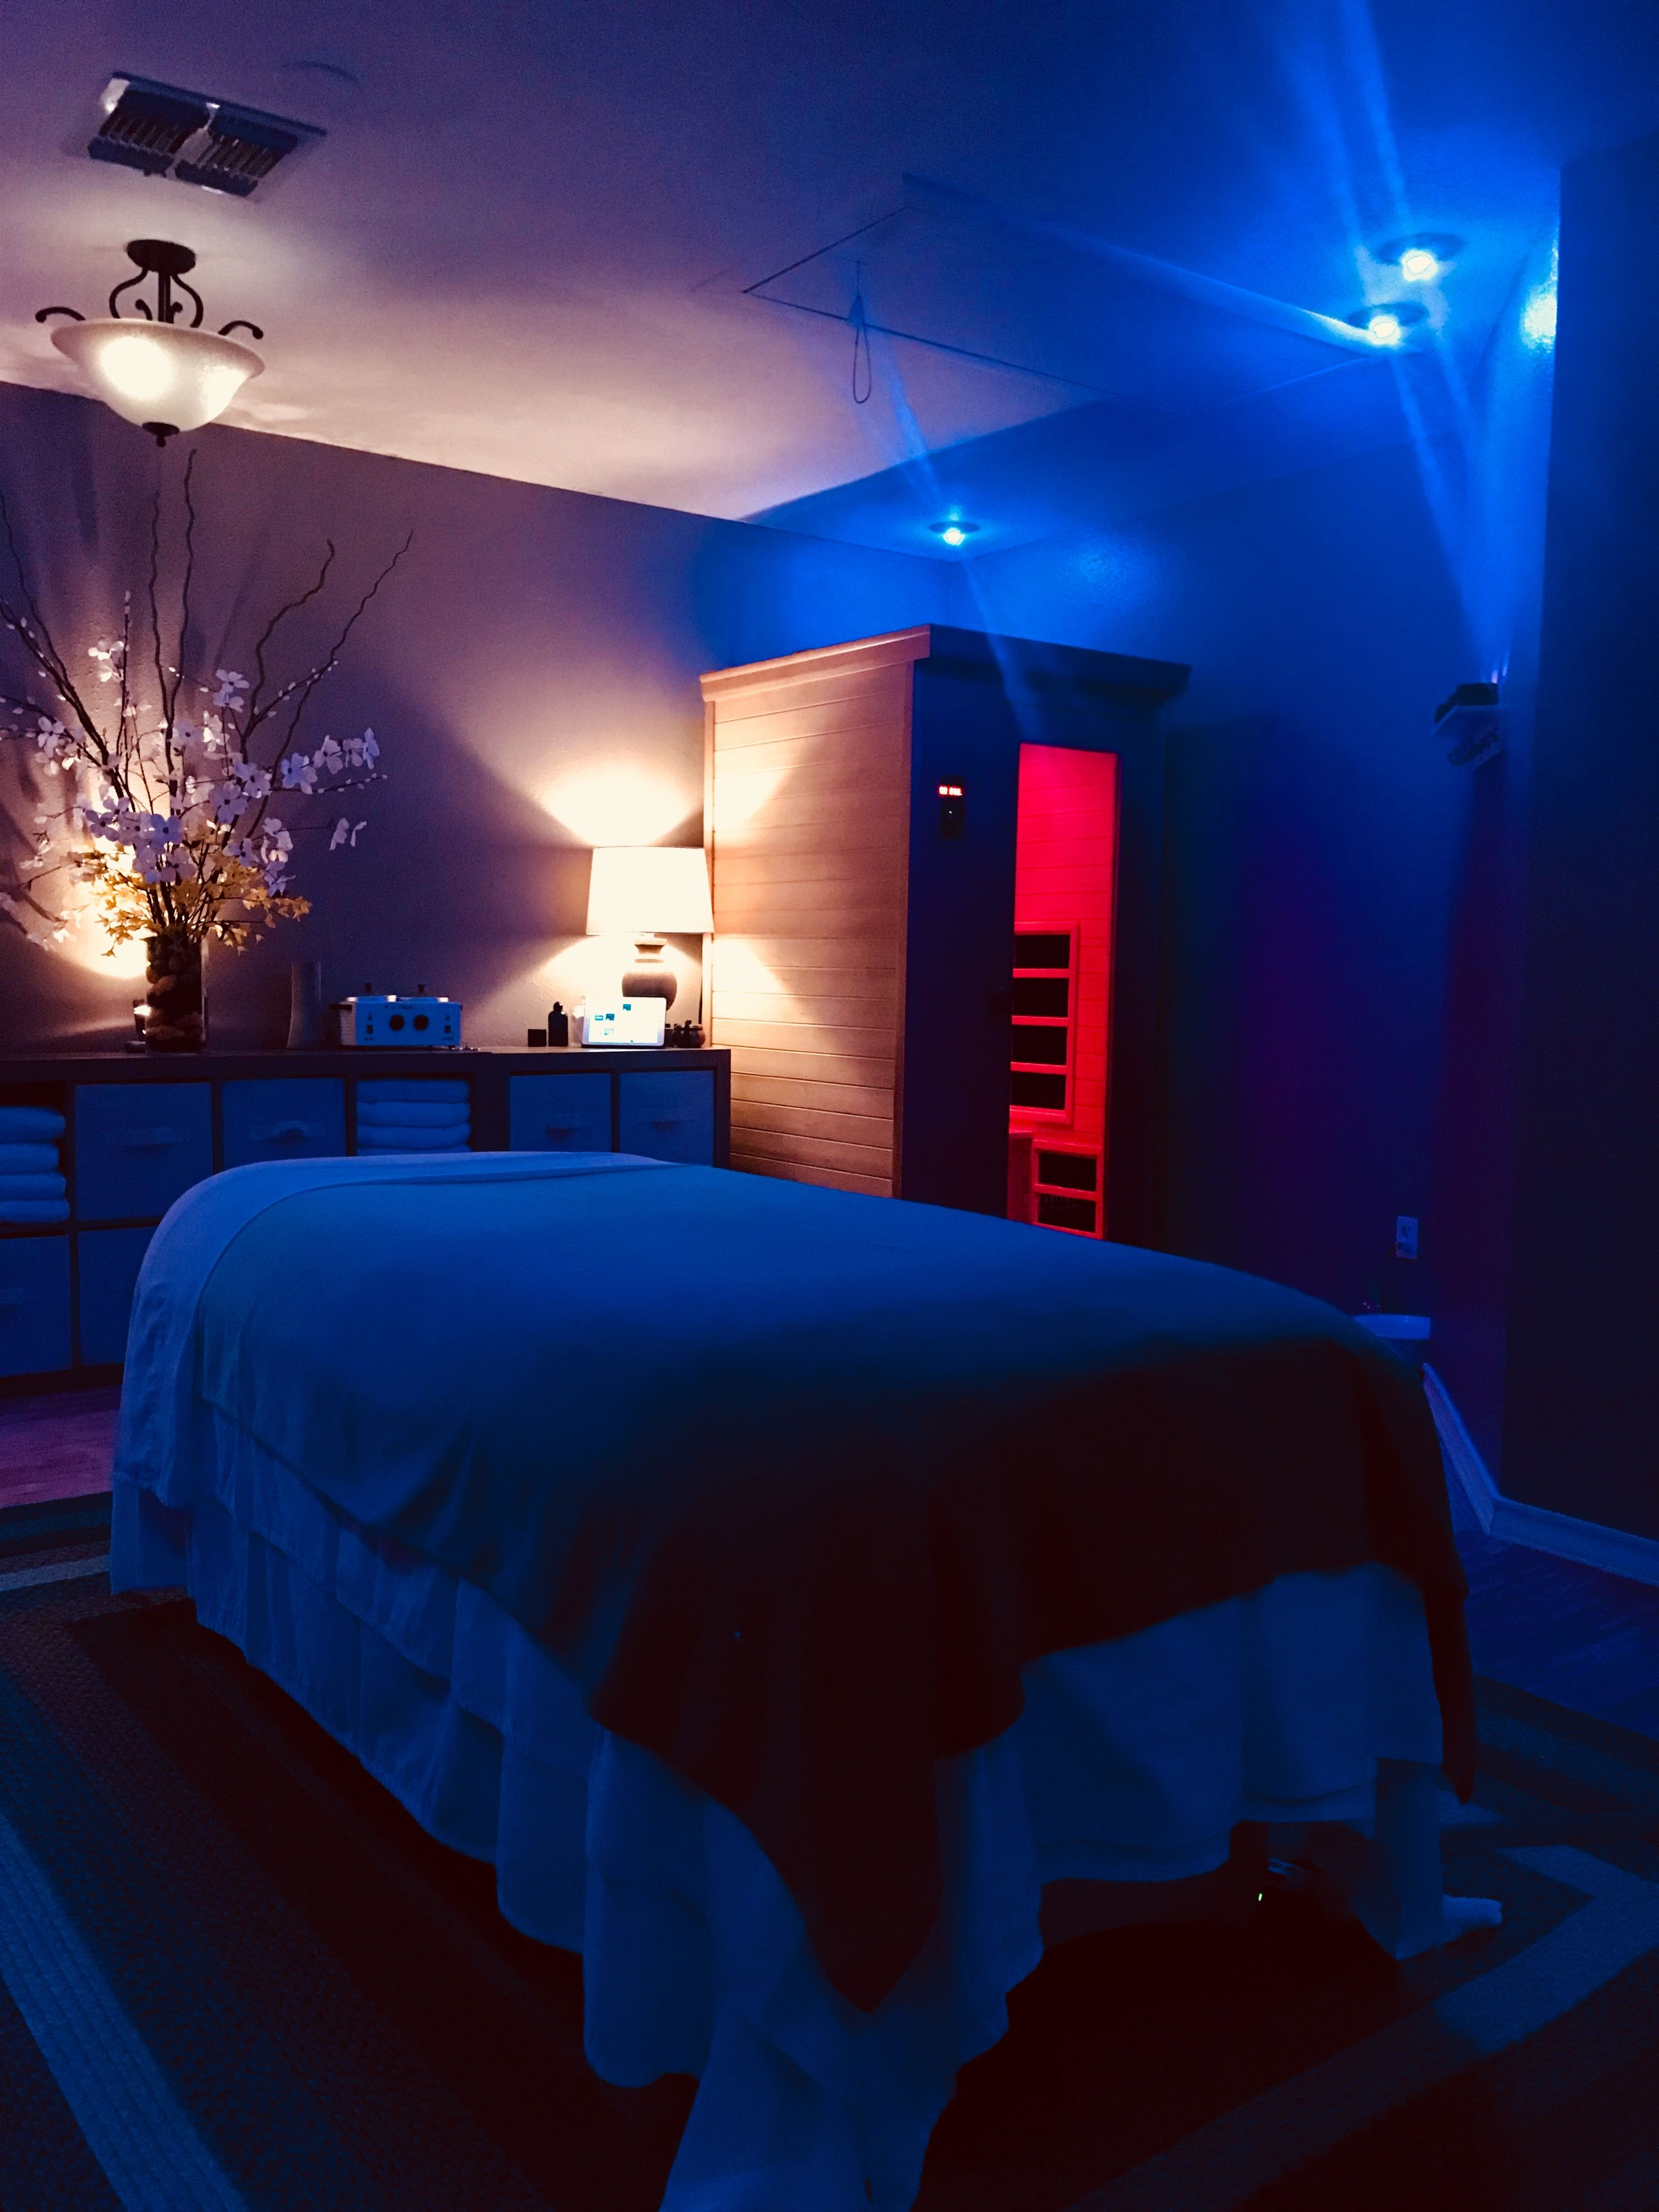 Elements Of Touch Therapeutic Spa Massage Room Light Therapy Infrared Sauna Spa Massage Room Infrared Sauna Massage Room